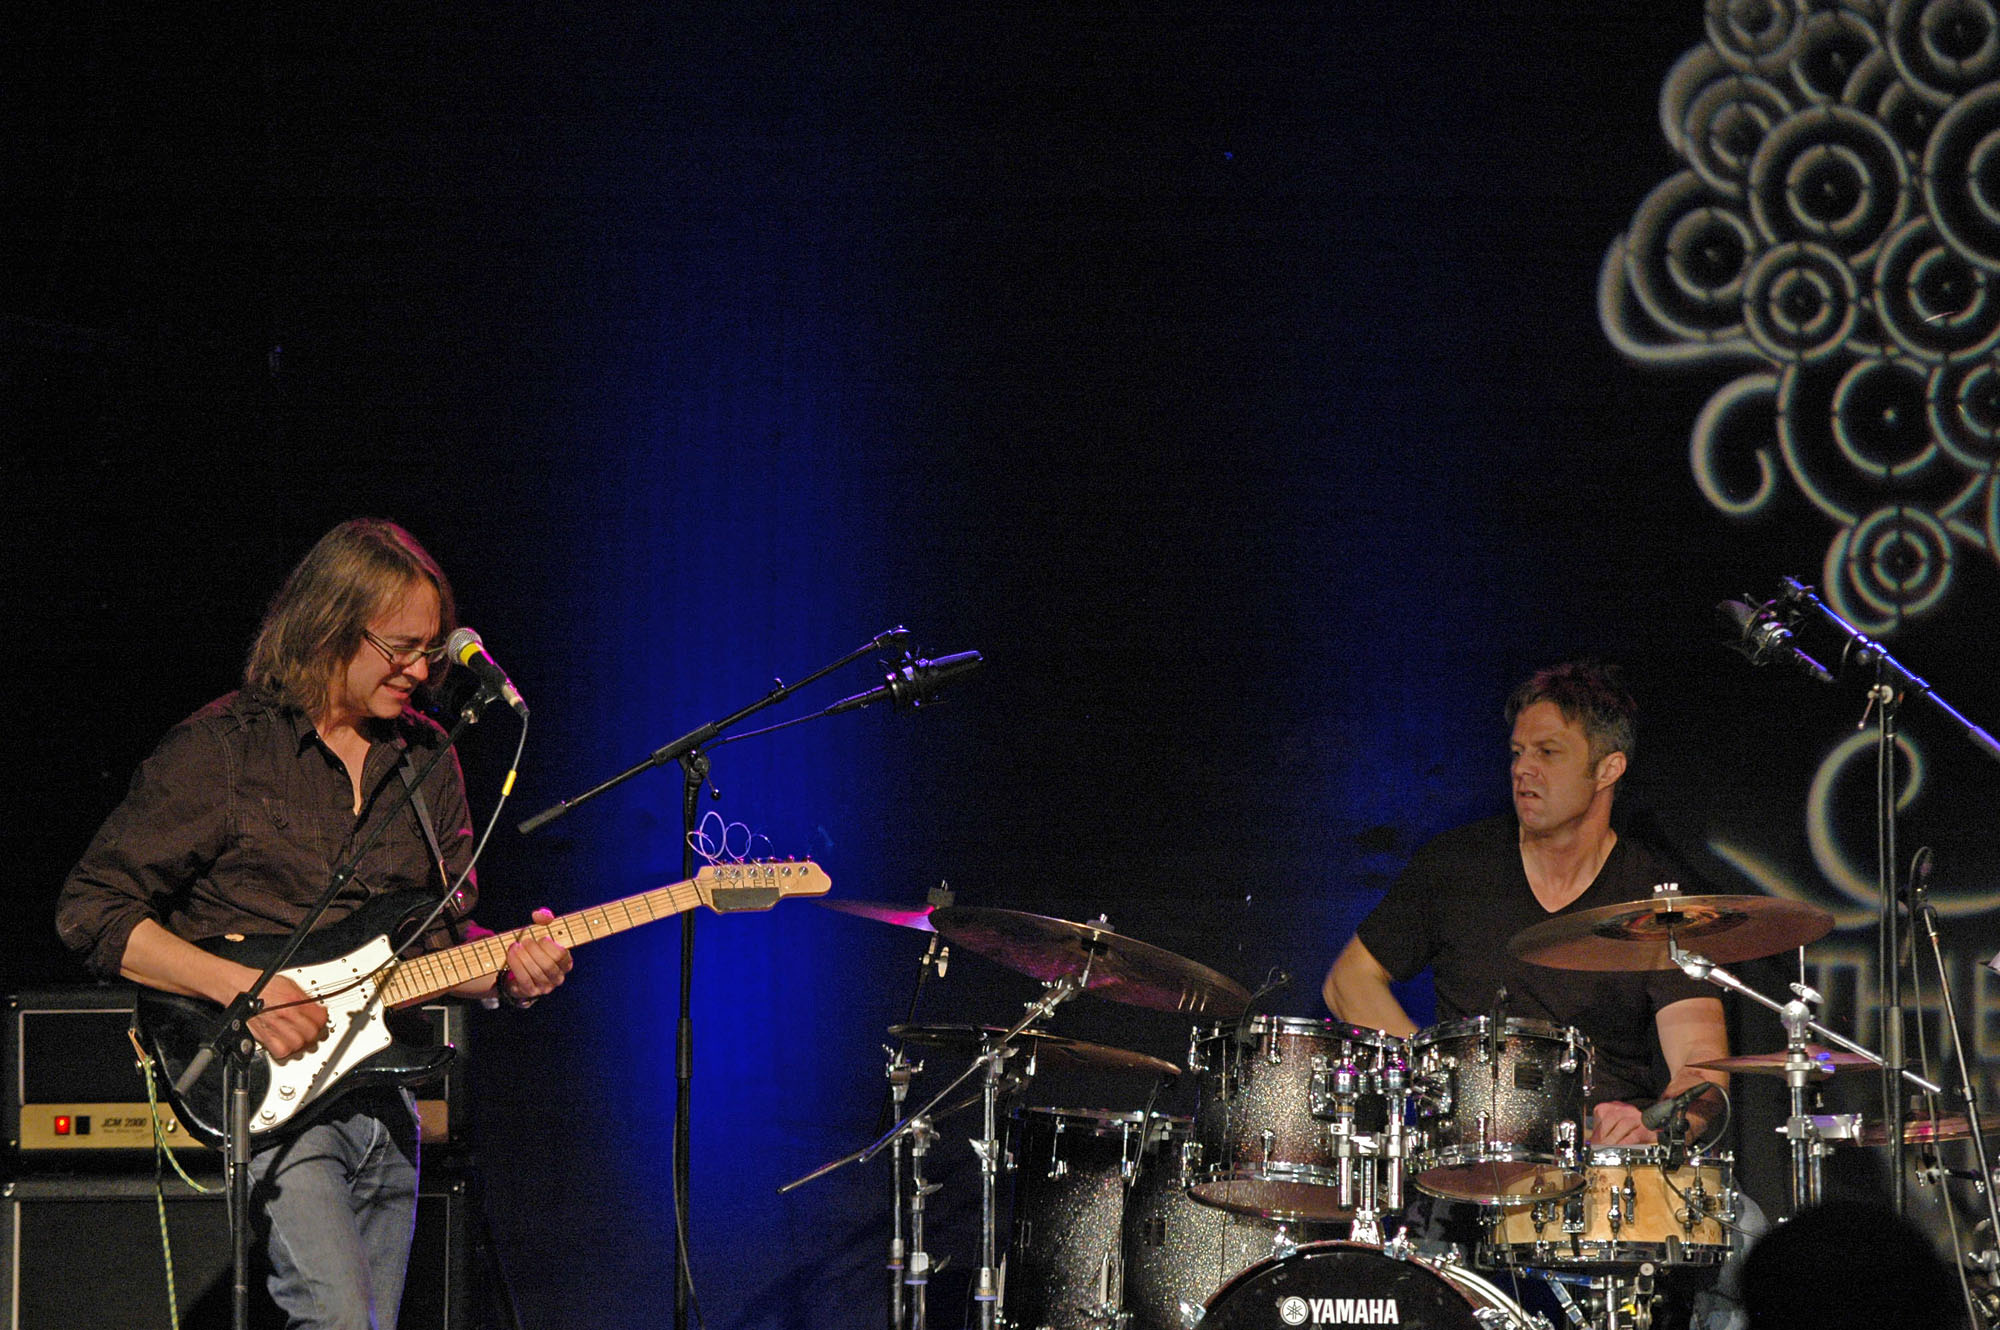 Wayne Krantz and Cliff Almond, Performing at the 2010 New Universe Music Festival